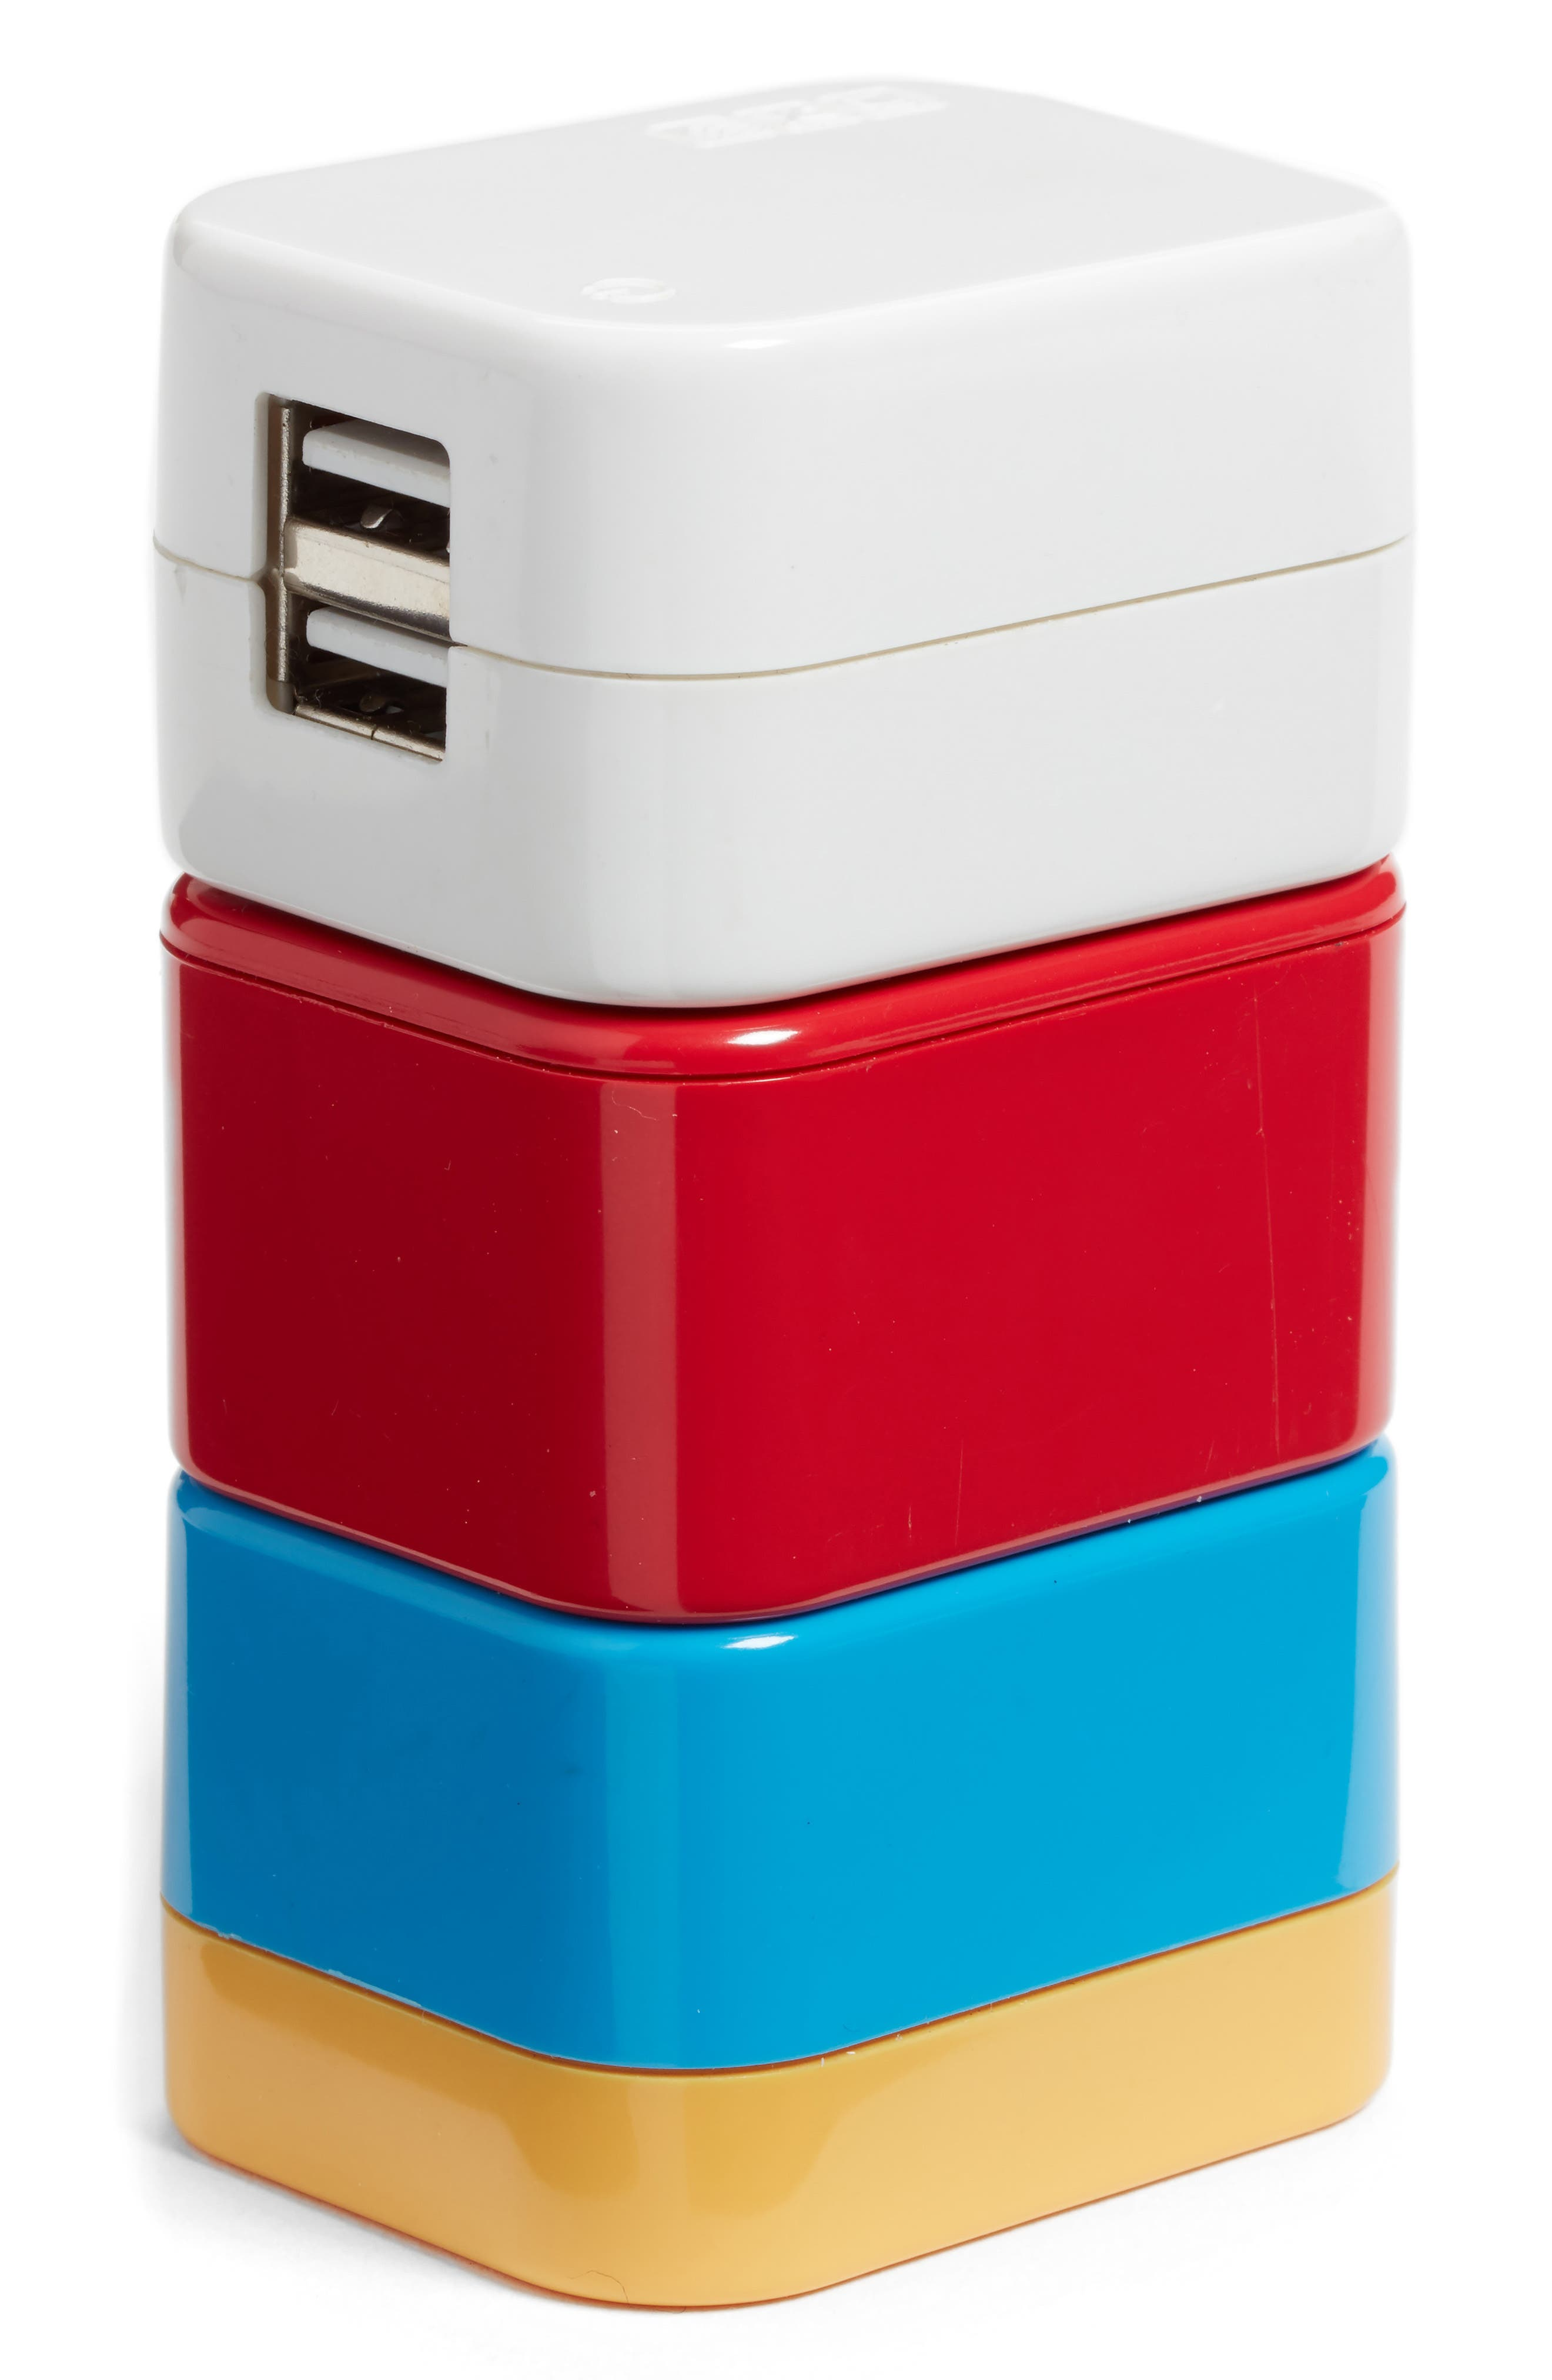 5-in-1 Universal Travel Adapter,                             Main thumbnail 1, color,                             600